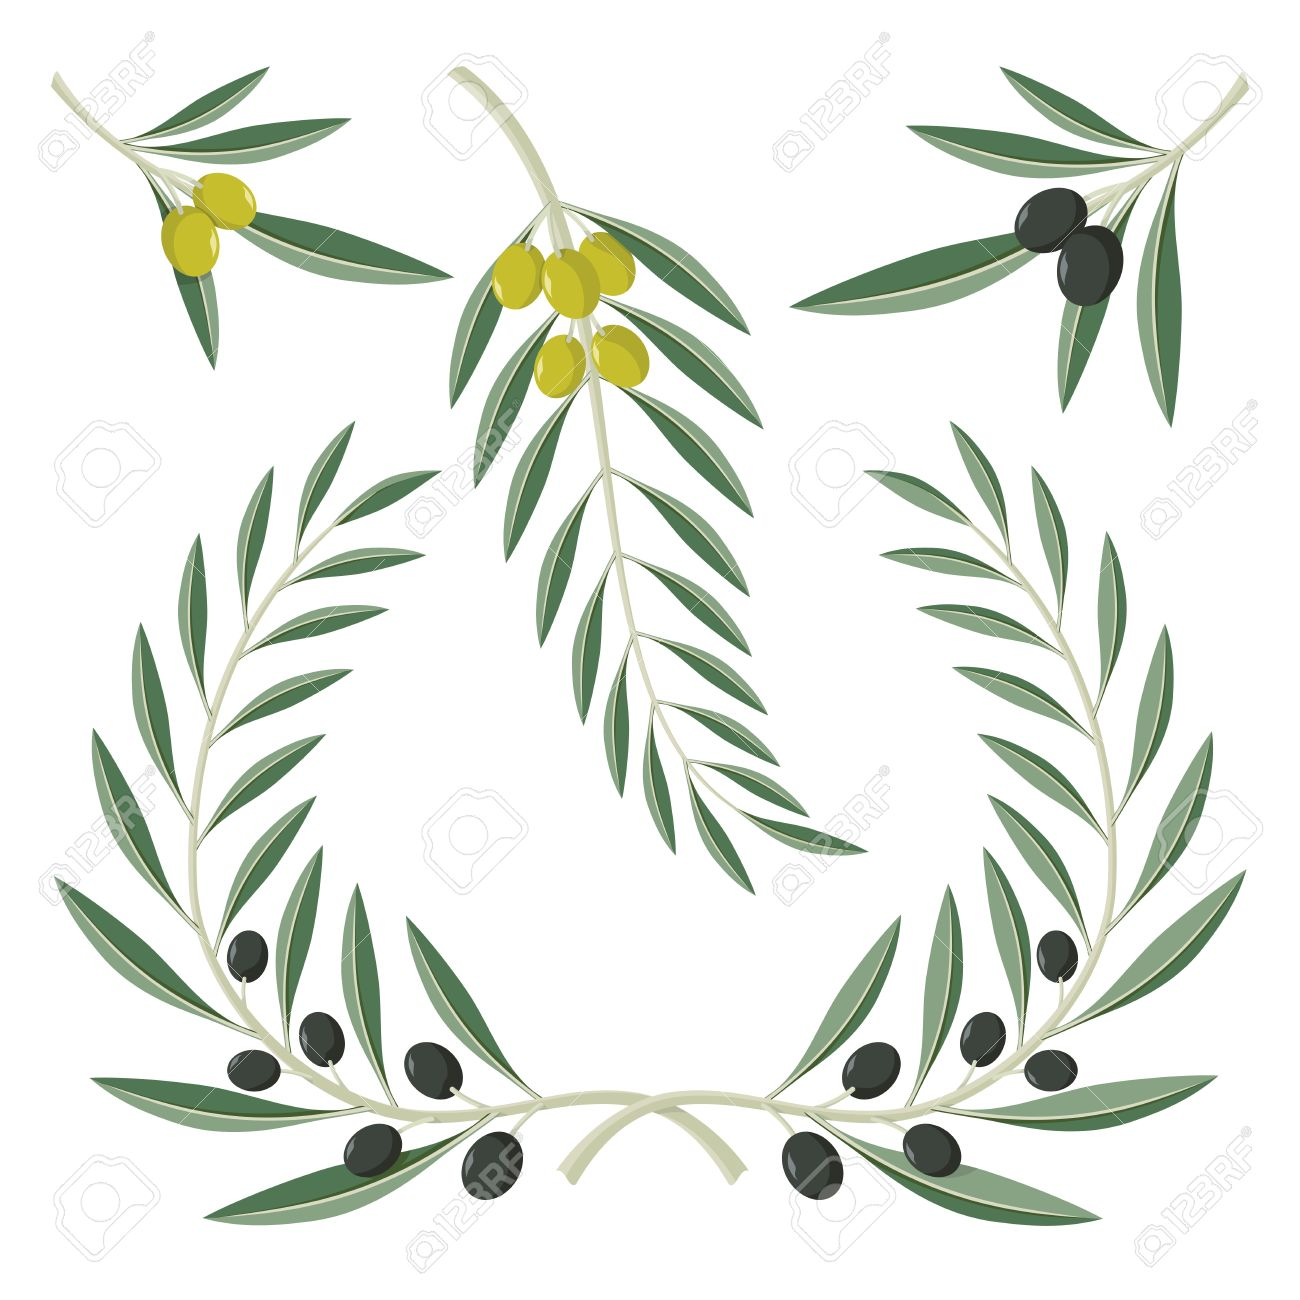 Various olive branches and wreath isolated on white background. - 19612099